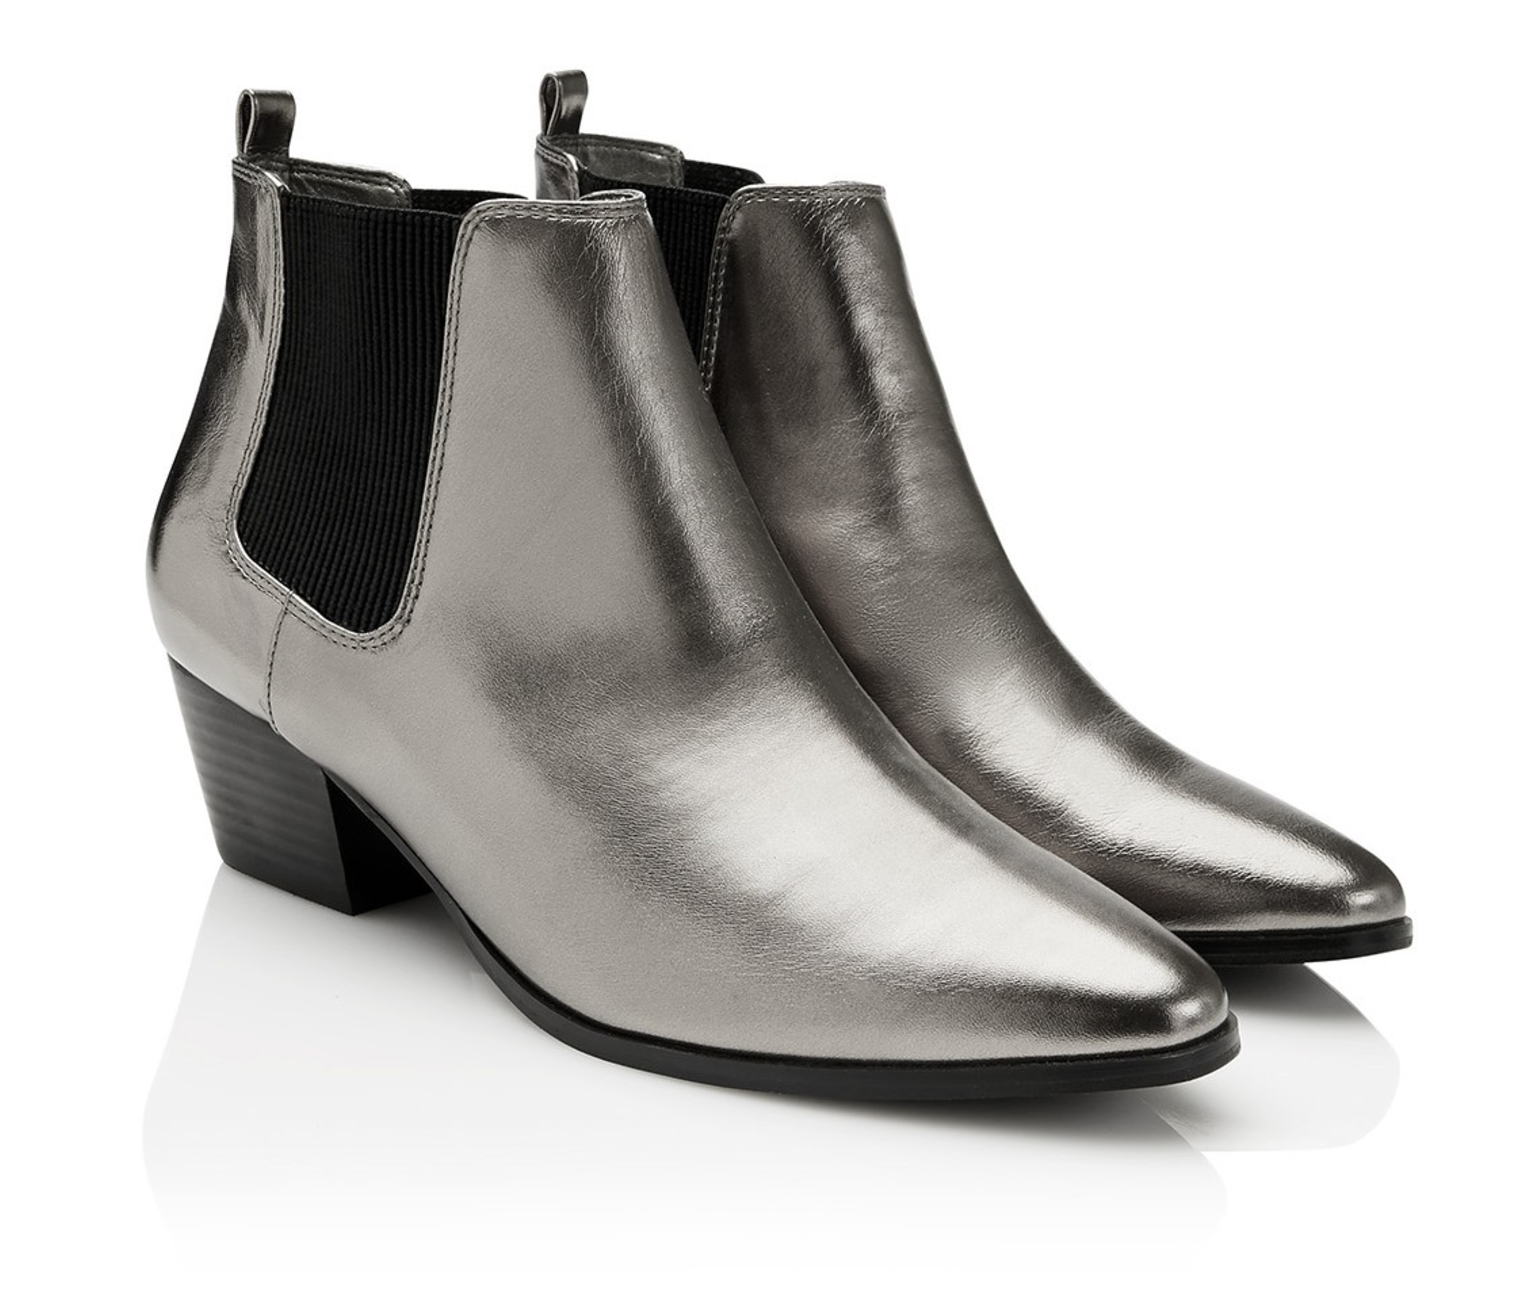 Sportsgirl Blake metallic ankle boot $89.95